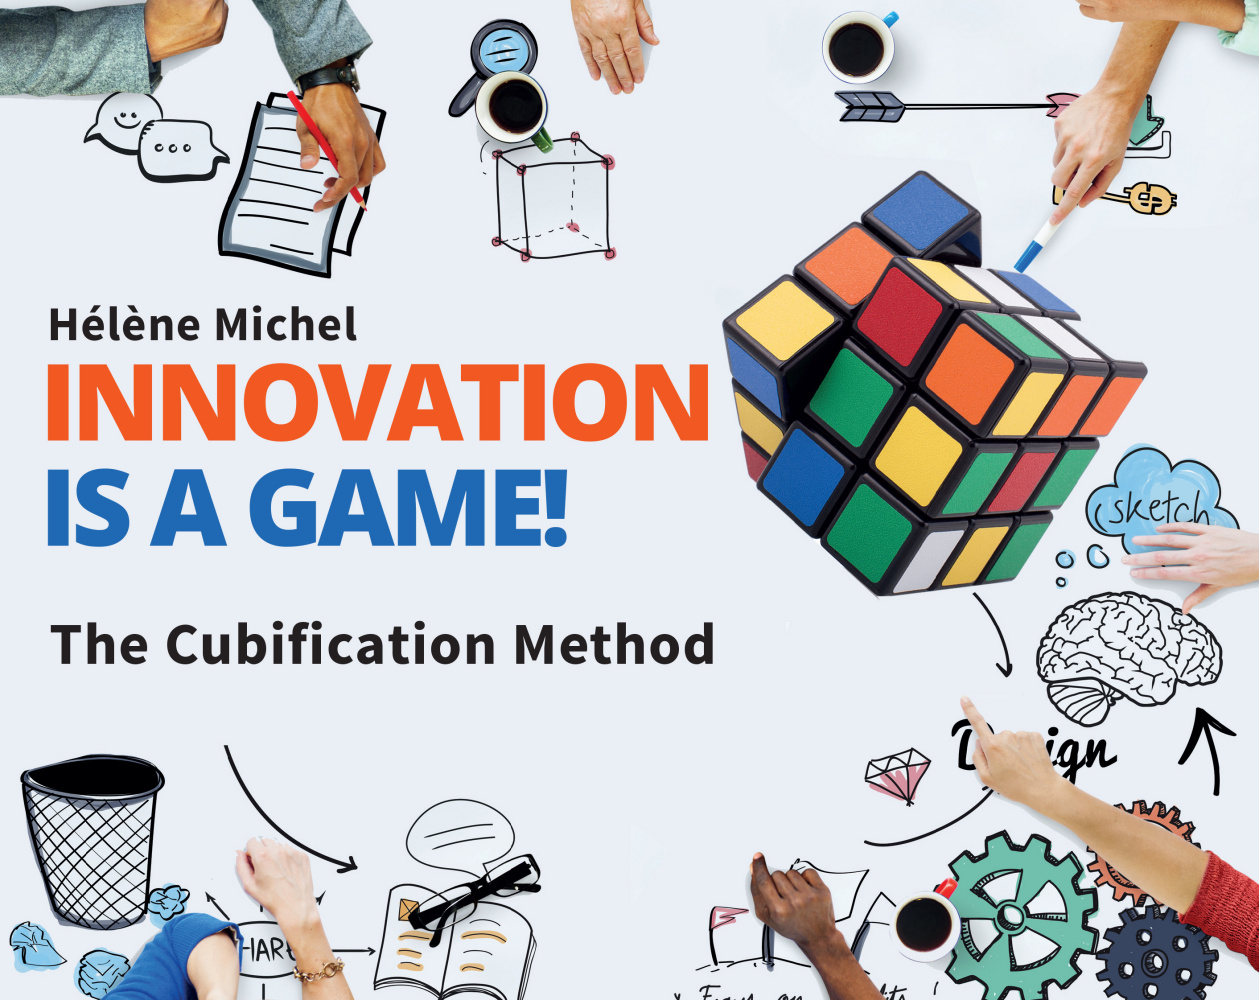 Innovation is a game!